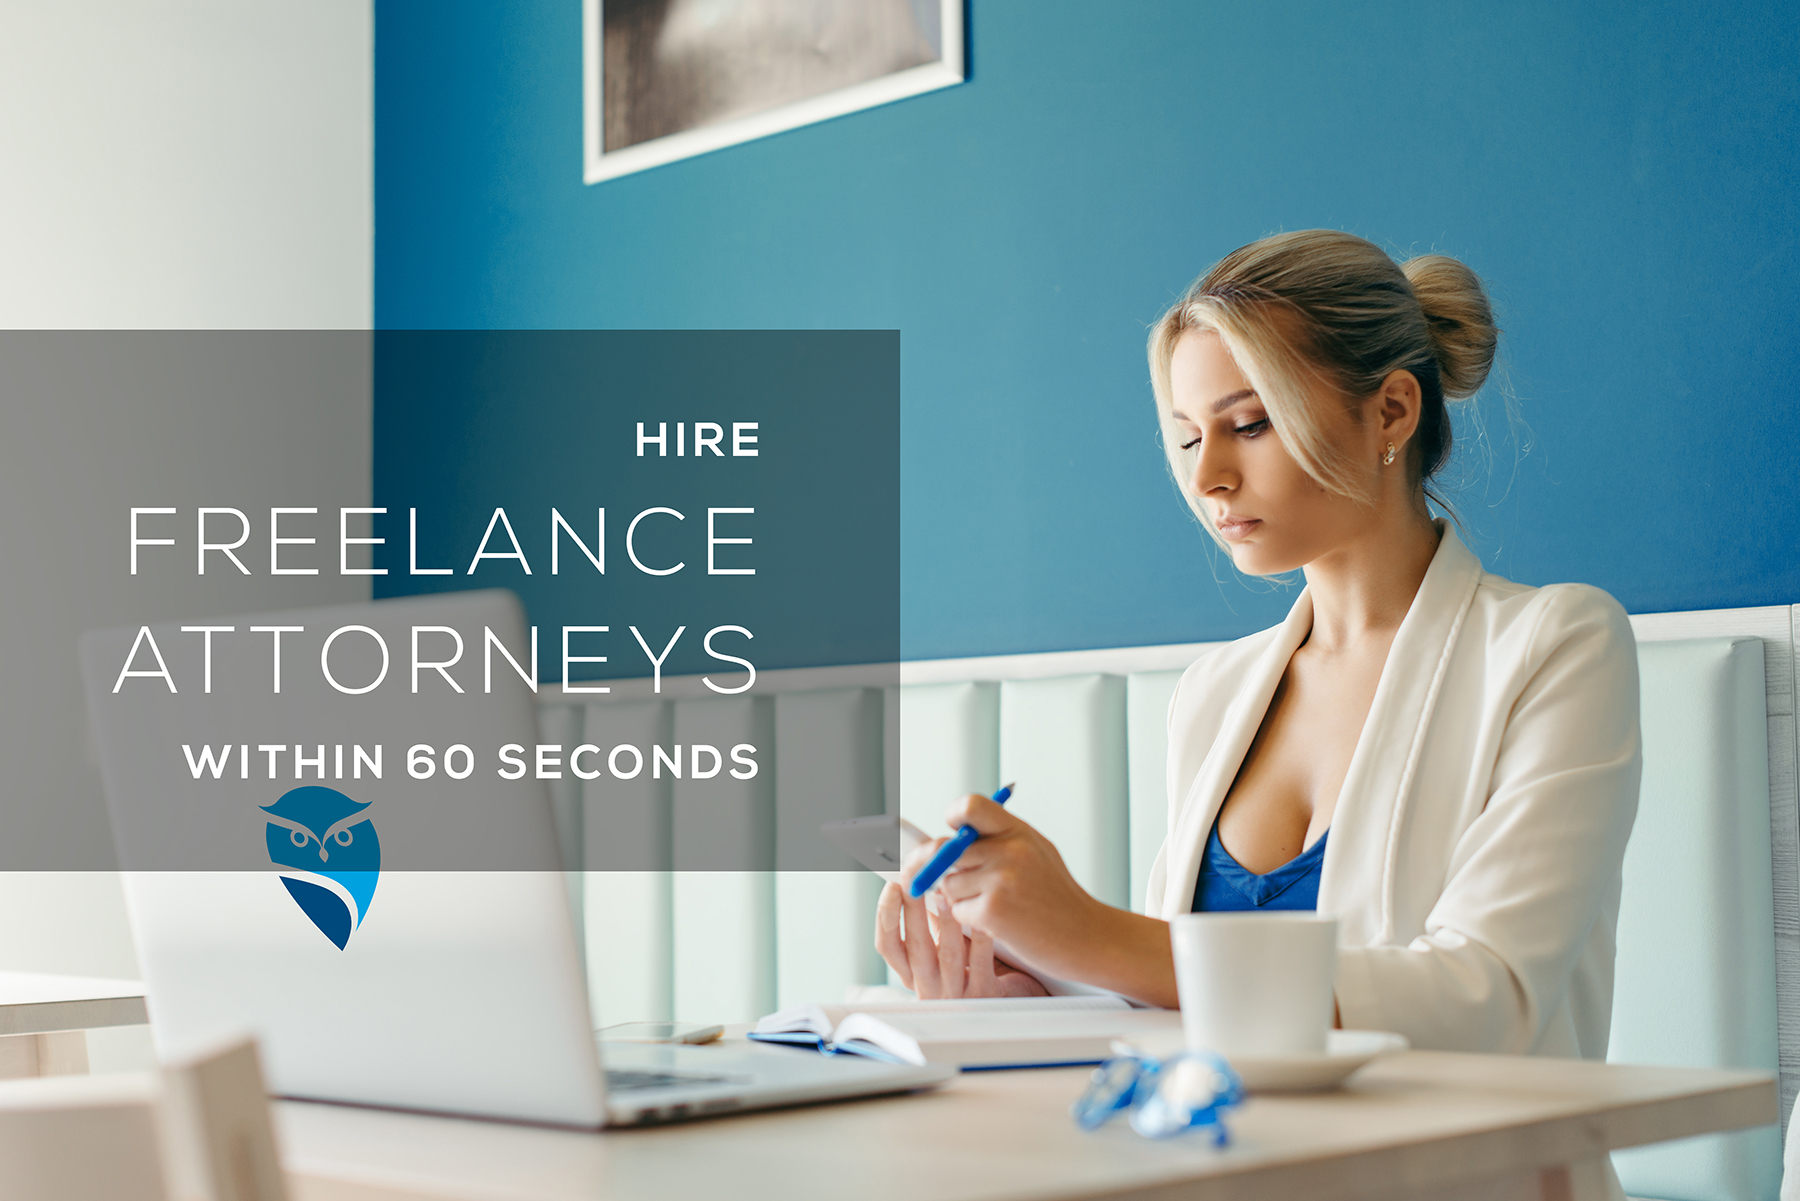 AppearMe Now Connects Freelance Attorneys and Law Firms